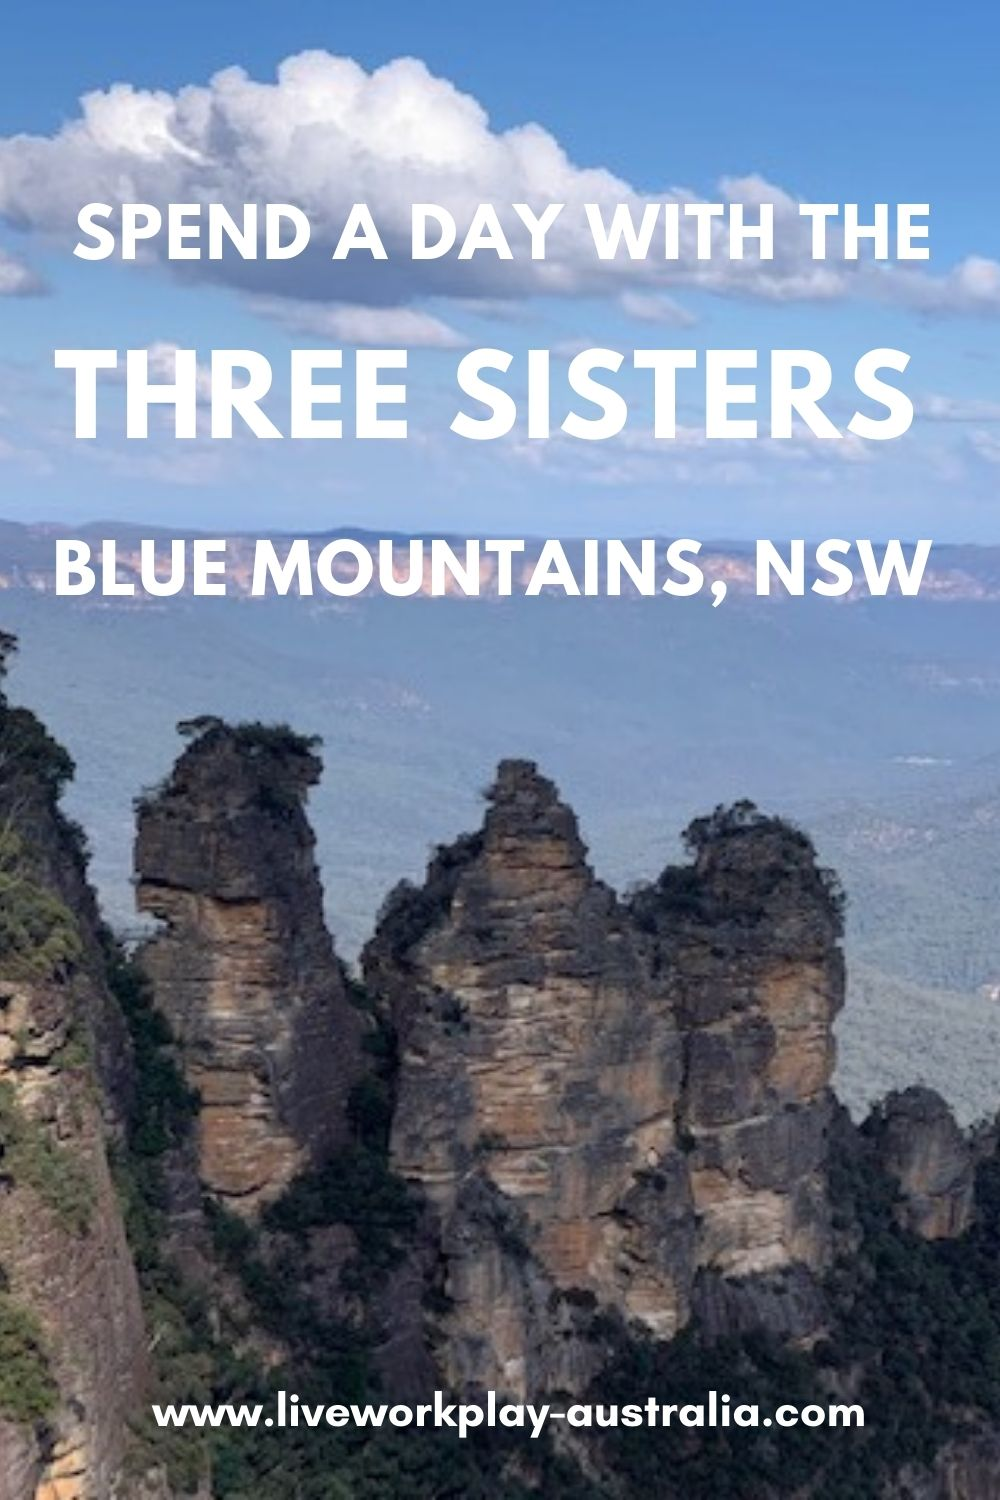 The Three Sisters Are Rock Formations In The Blue Mountains, NSW, Australia.